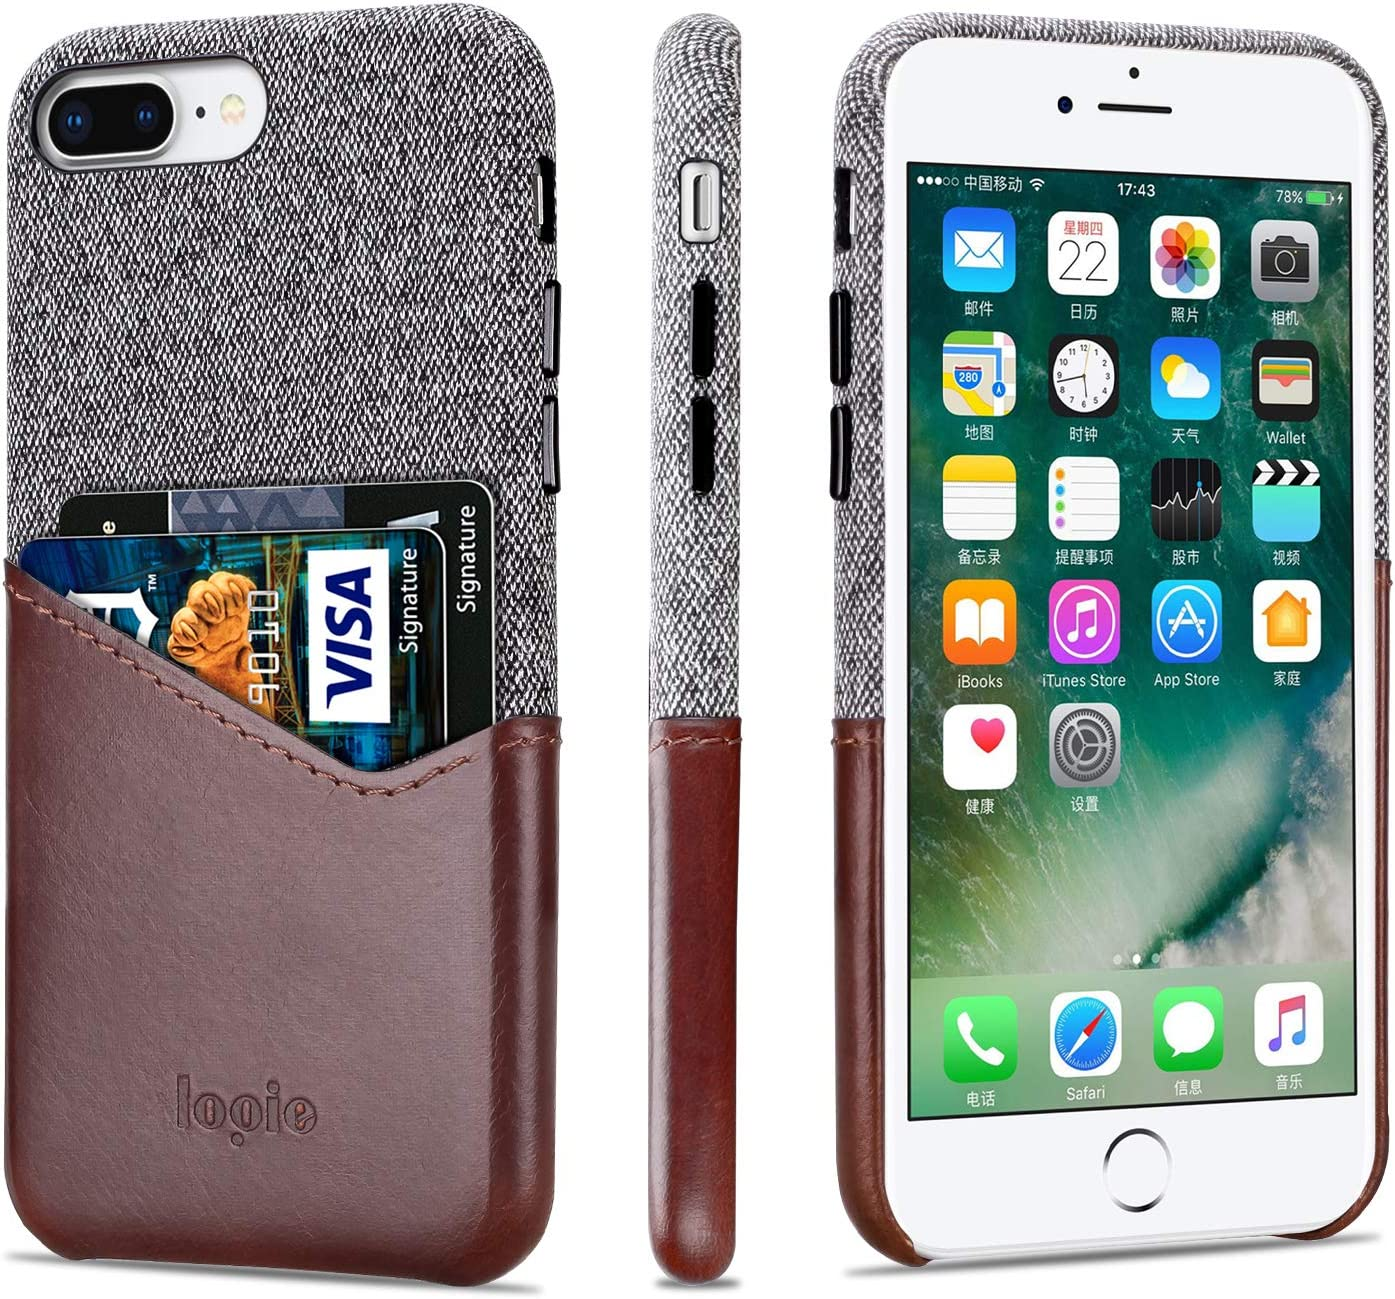 Lopie [Sea Island Cotton Series] iPhone 7 Plus/iPhone 8 Plus Case with Card Holder, Fabric Slim Back Cover with Leather Card Slot Design, Dark Brown